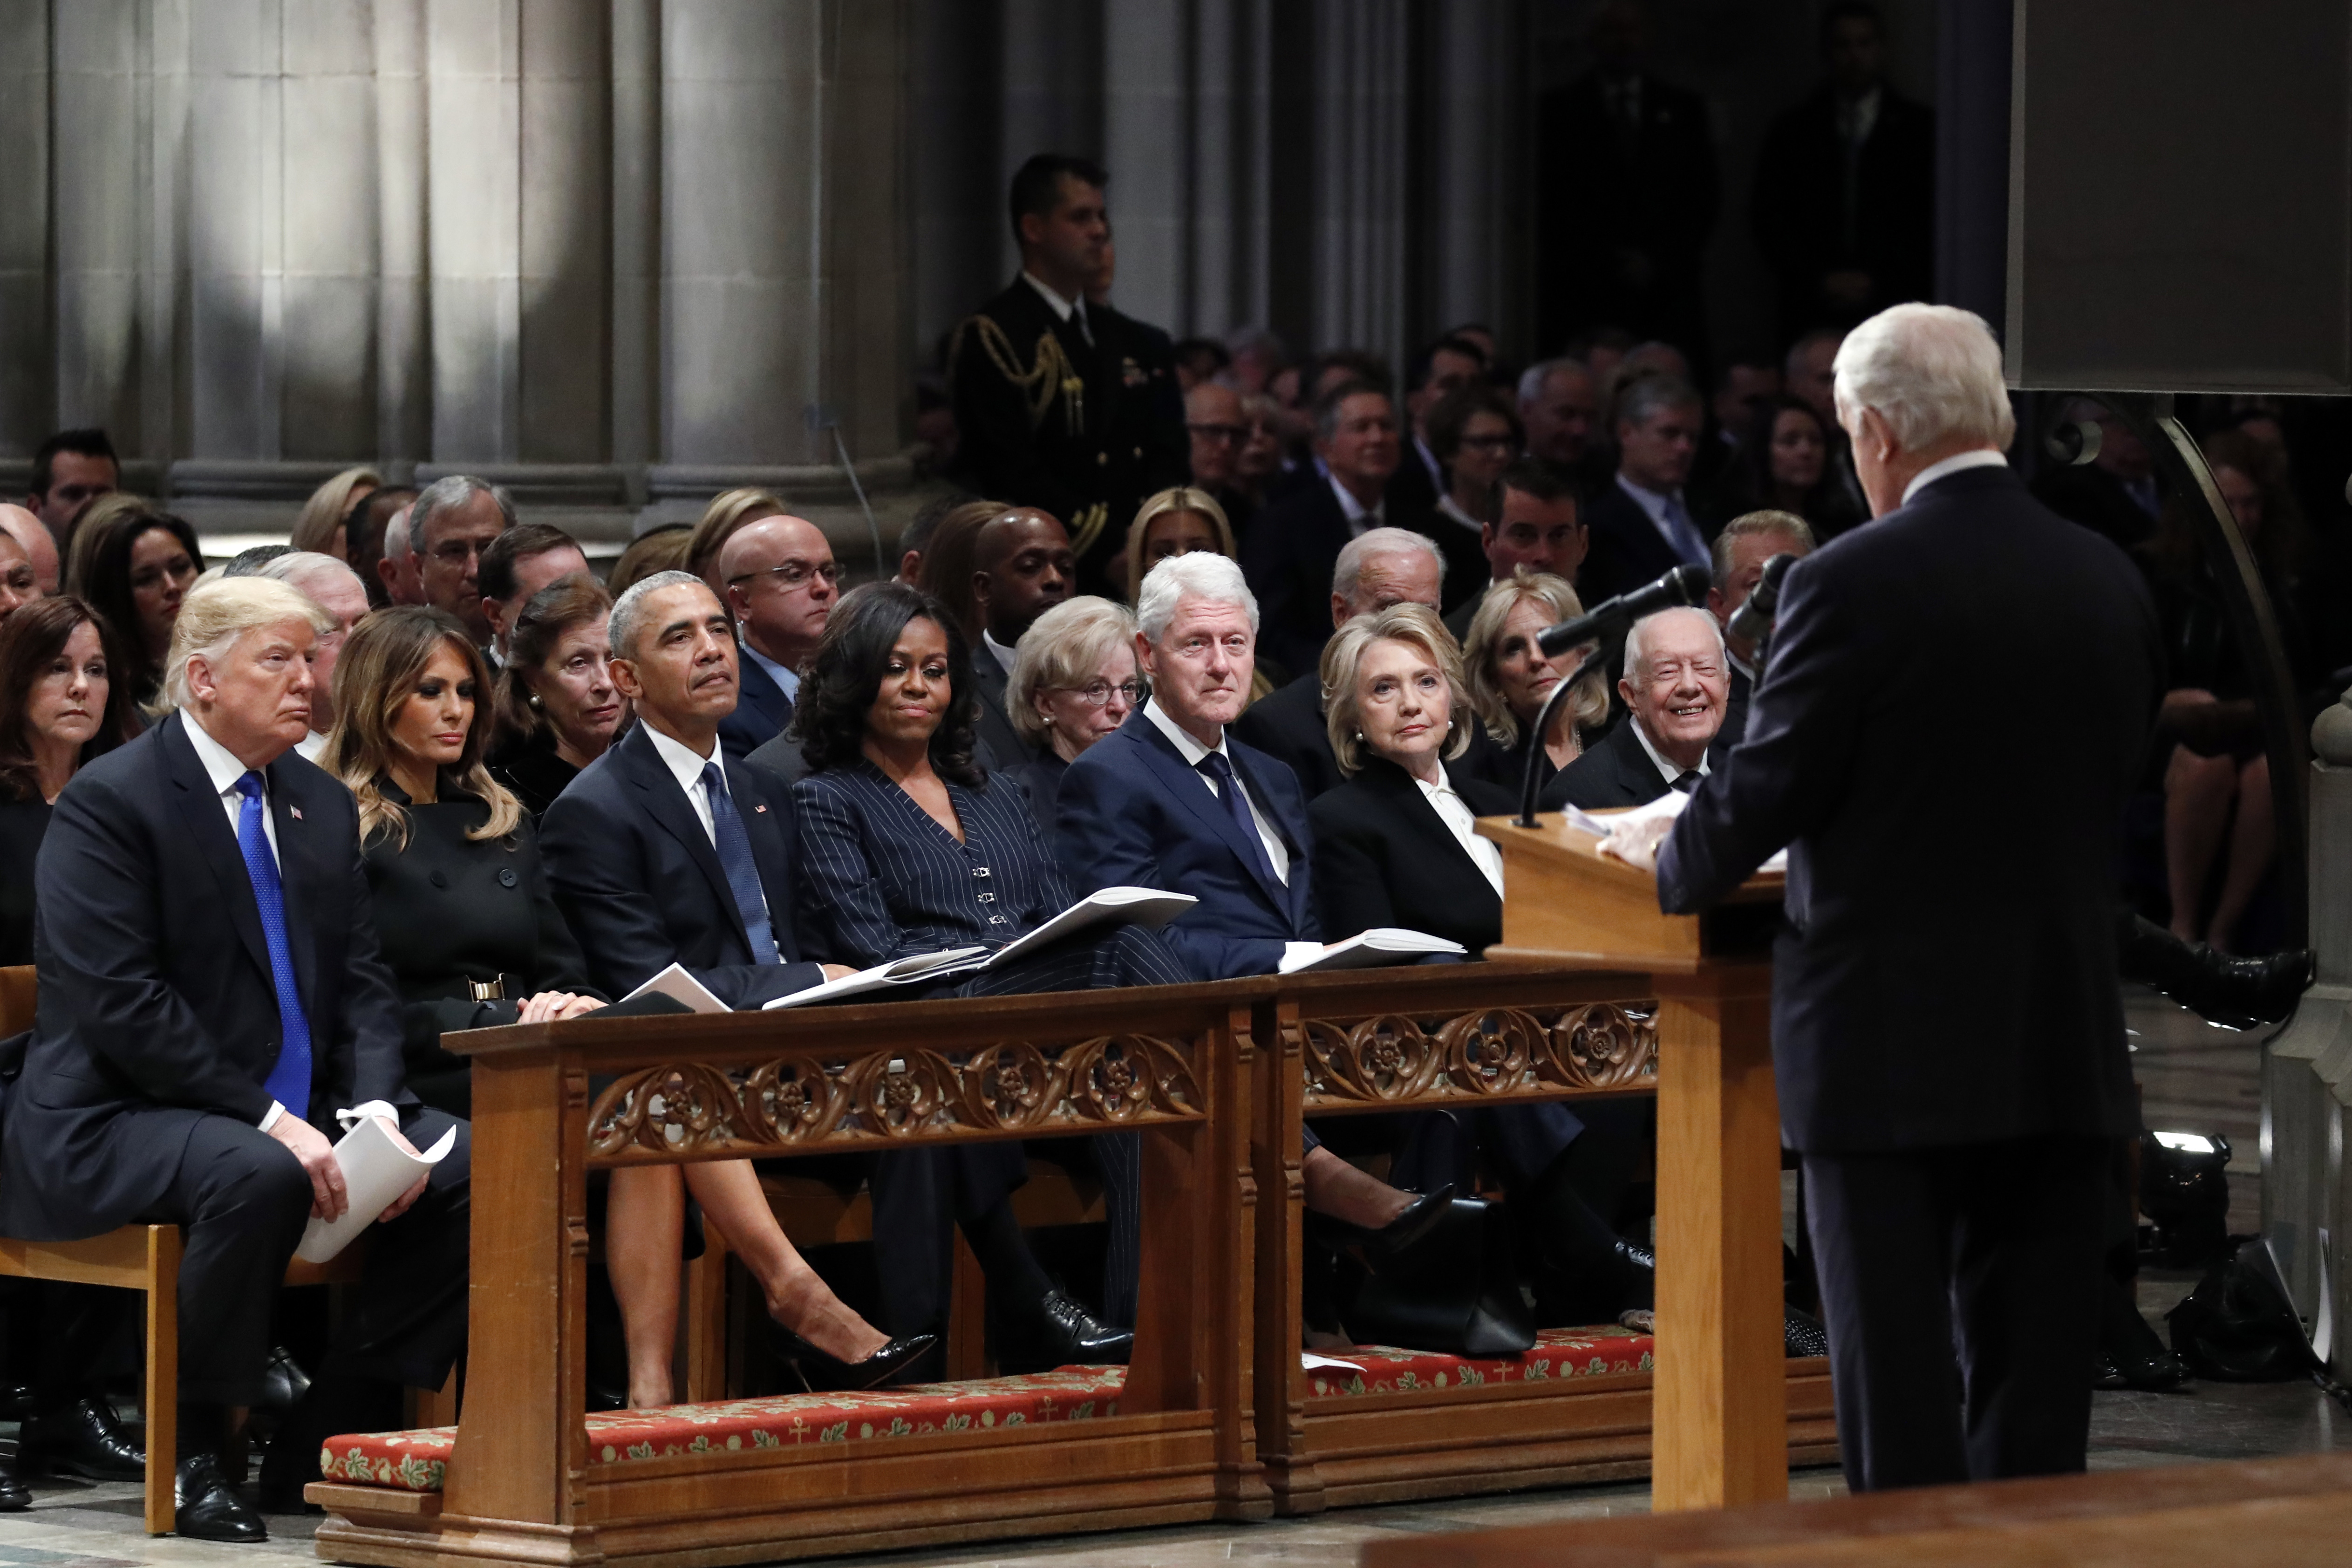 From left, President Donald Trump, first lady Melania Trump, former President Barack Obama, Michelle Obama, former President Bill Clinton, former Secretary of State Hillary Clinton, and former President Jimmy Carter listen as former Canadian Prime Minister Brian Mulroney speaks during a State Funeral at the National Cathedral, Wednesday, Dec. 5, 2018, in Washington, for former President George H.W. Bush. (AP Photo/Alex Brandon, Pool)